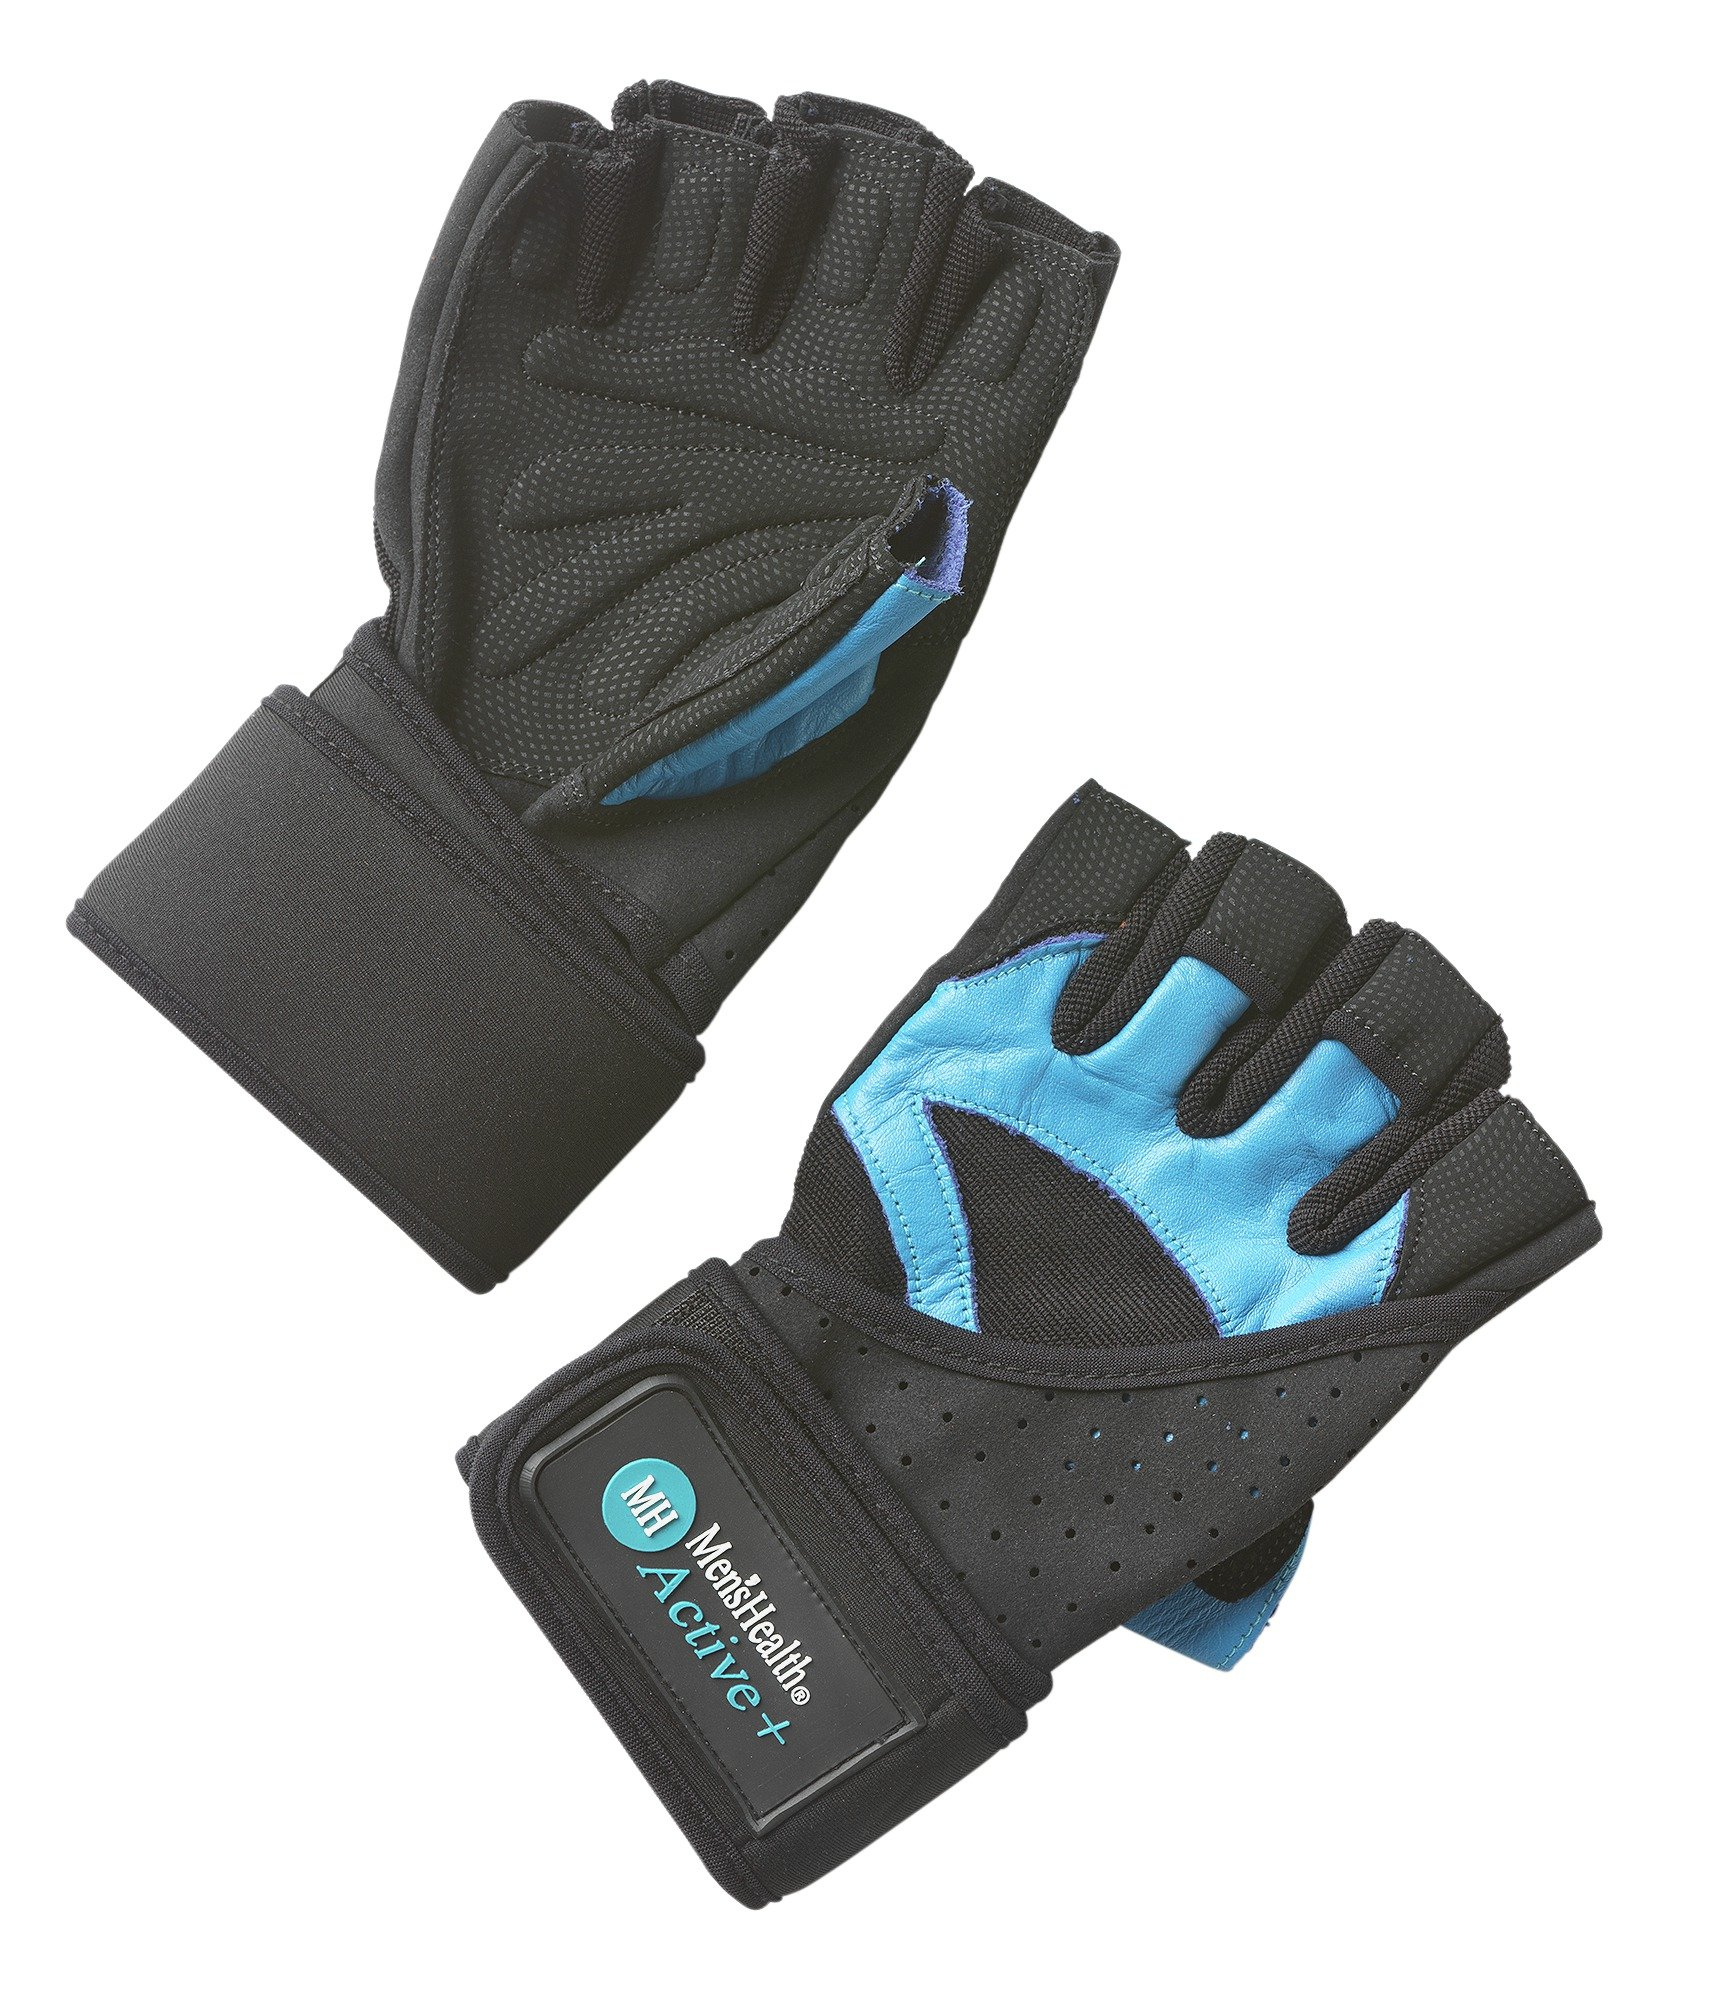 Driving gloves argos - Men S Health Weightlifting Gloves With Strap Large